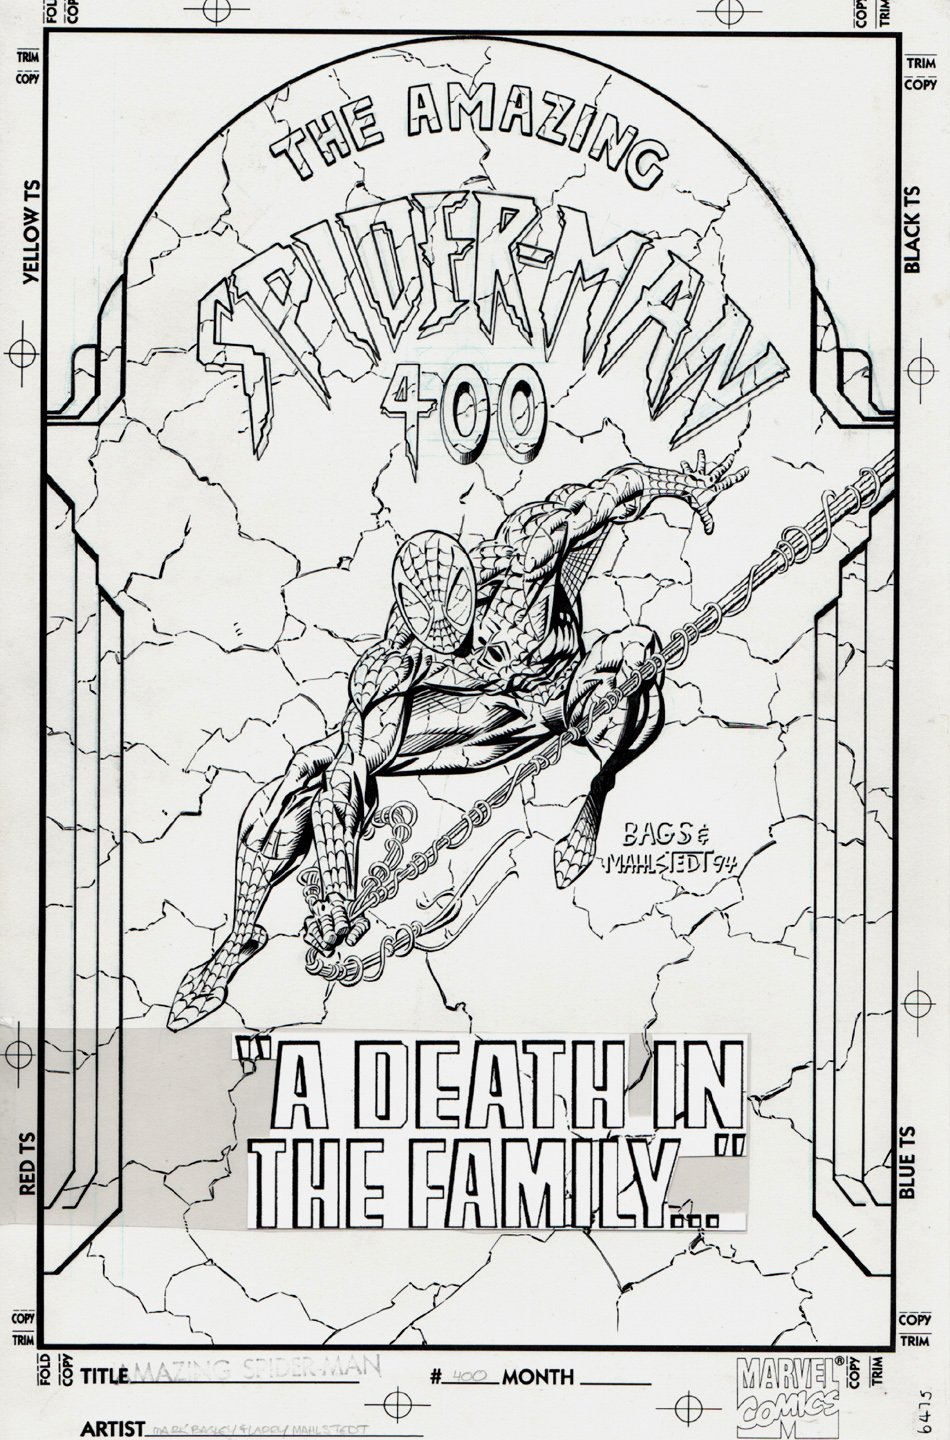 Amazing Spider-Man #400 Cover (1994) SOLD SOLD SOLD!